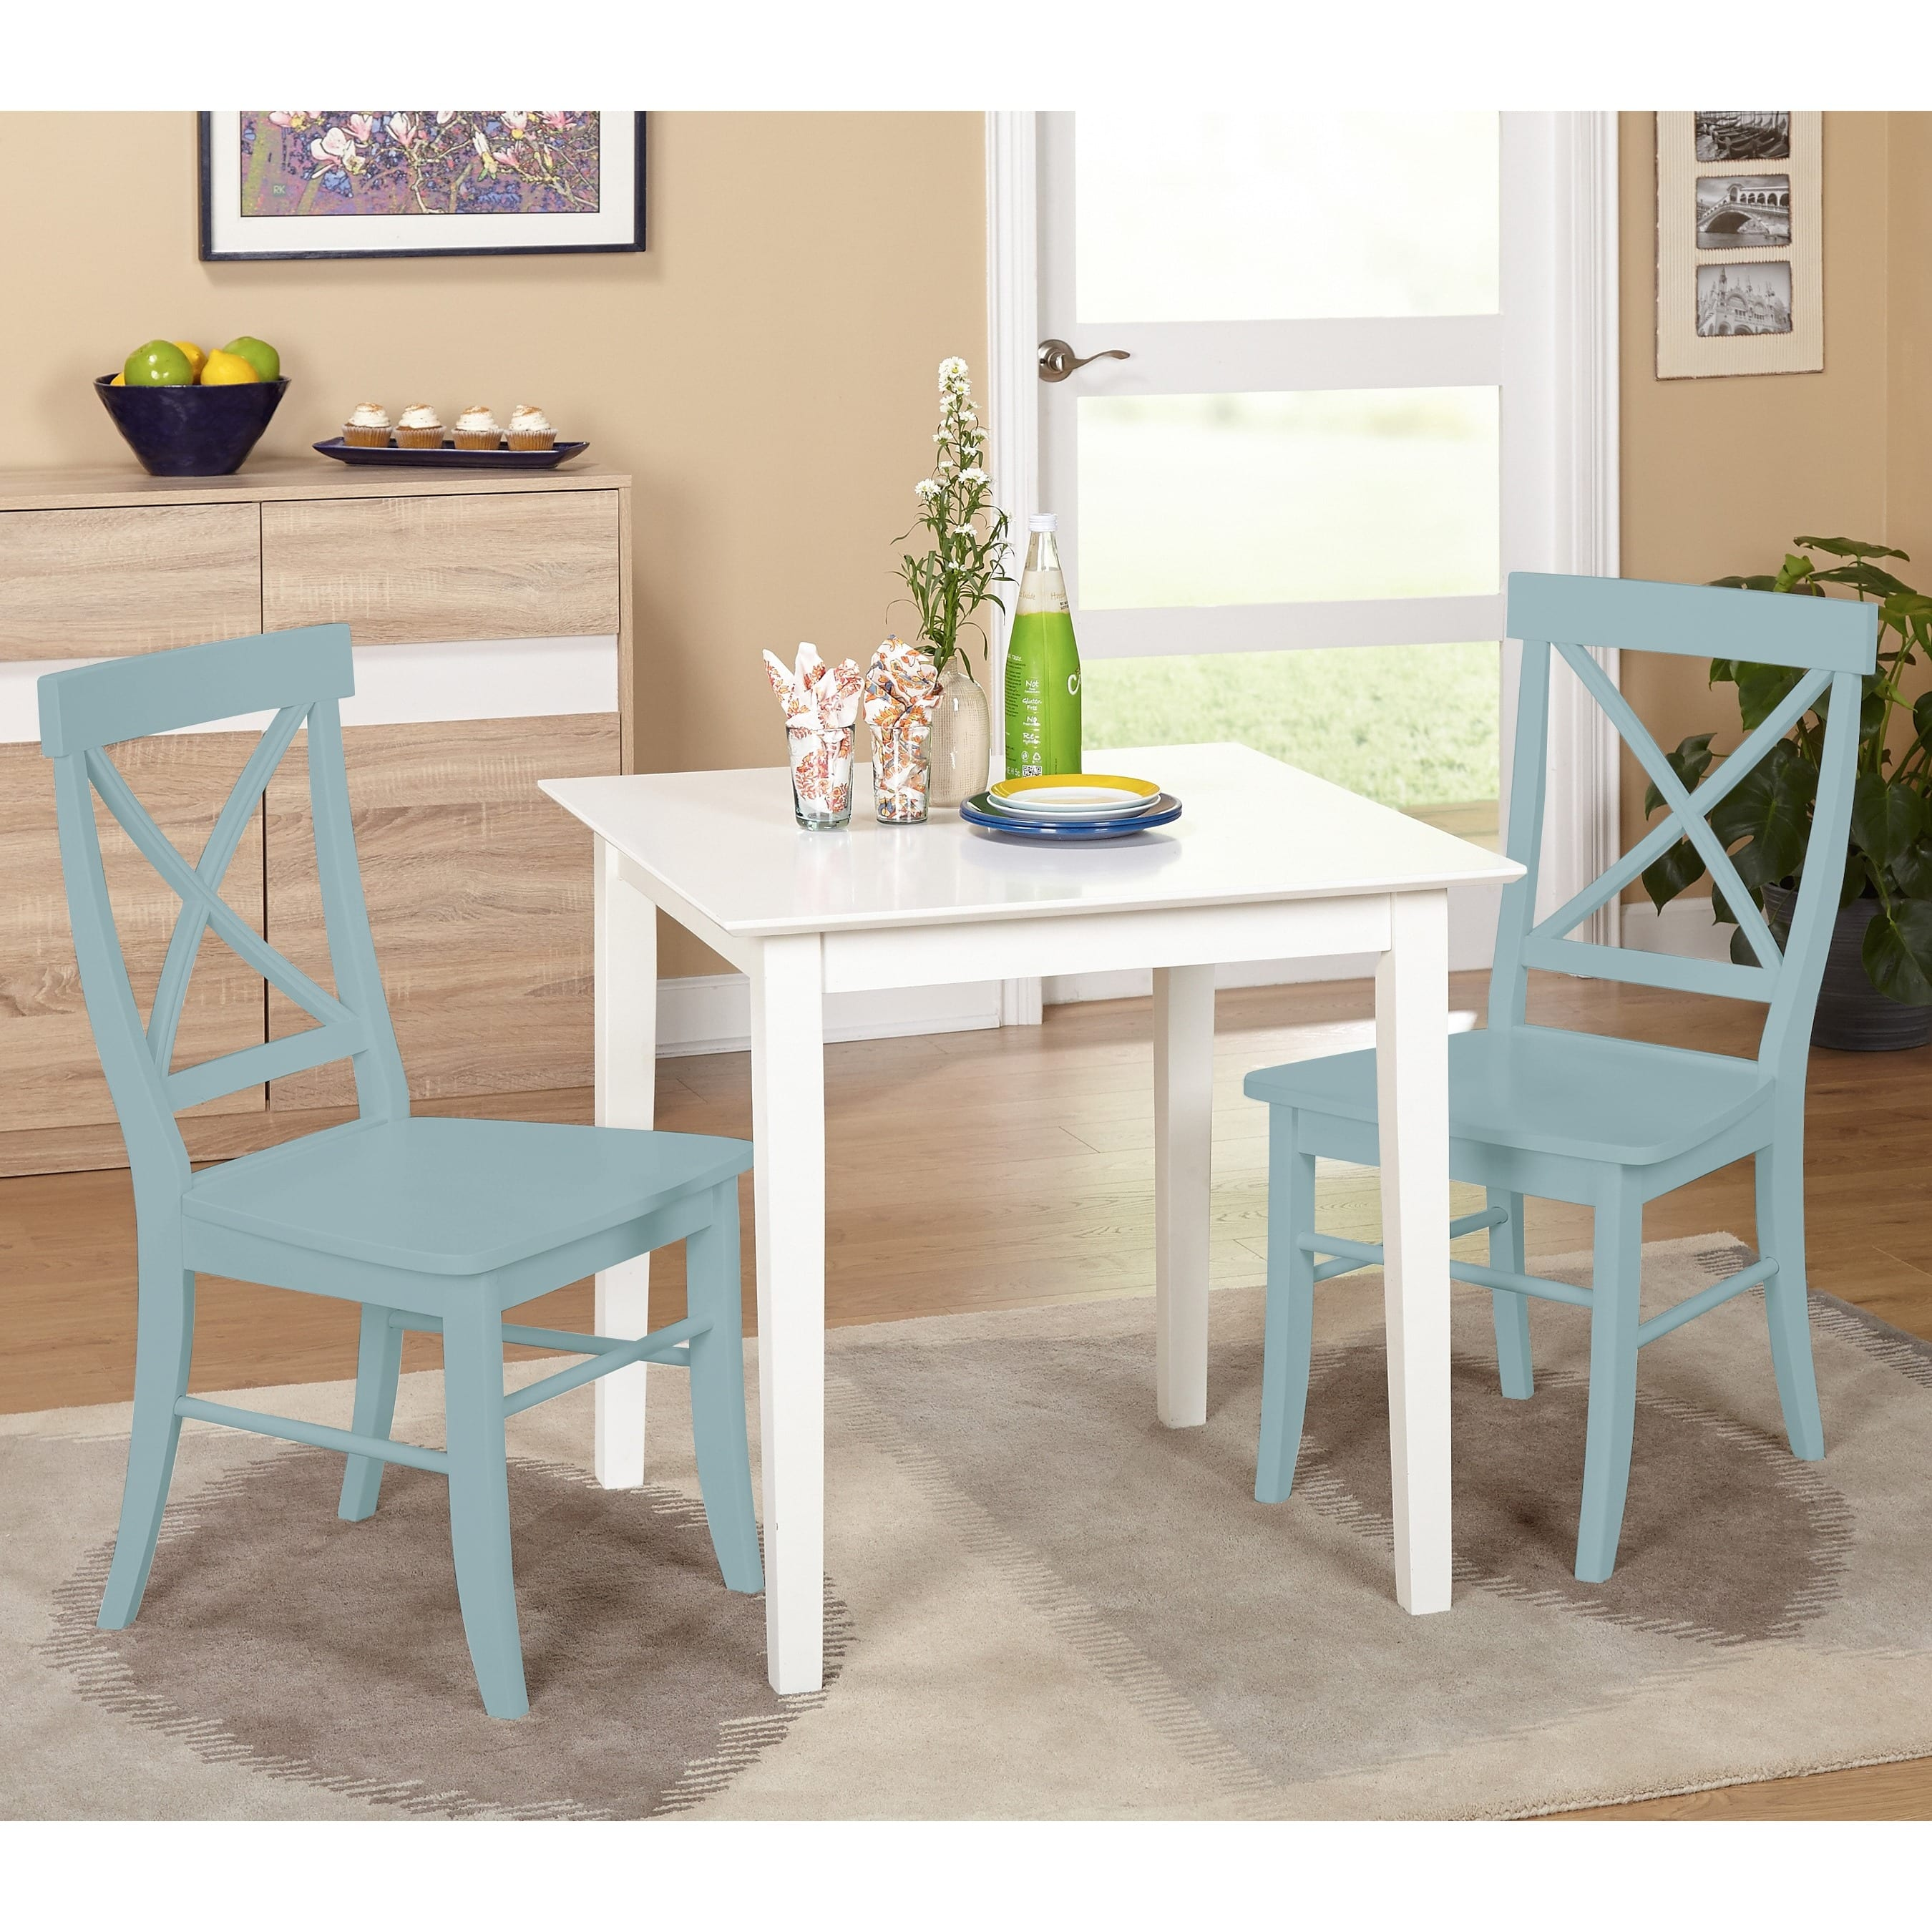 Dining room sets for less for Living room furniture 0 finance